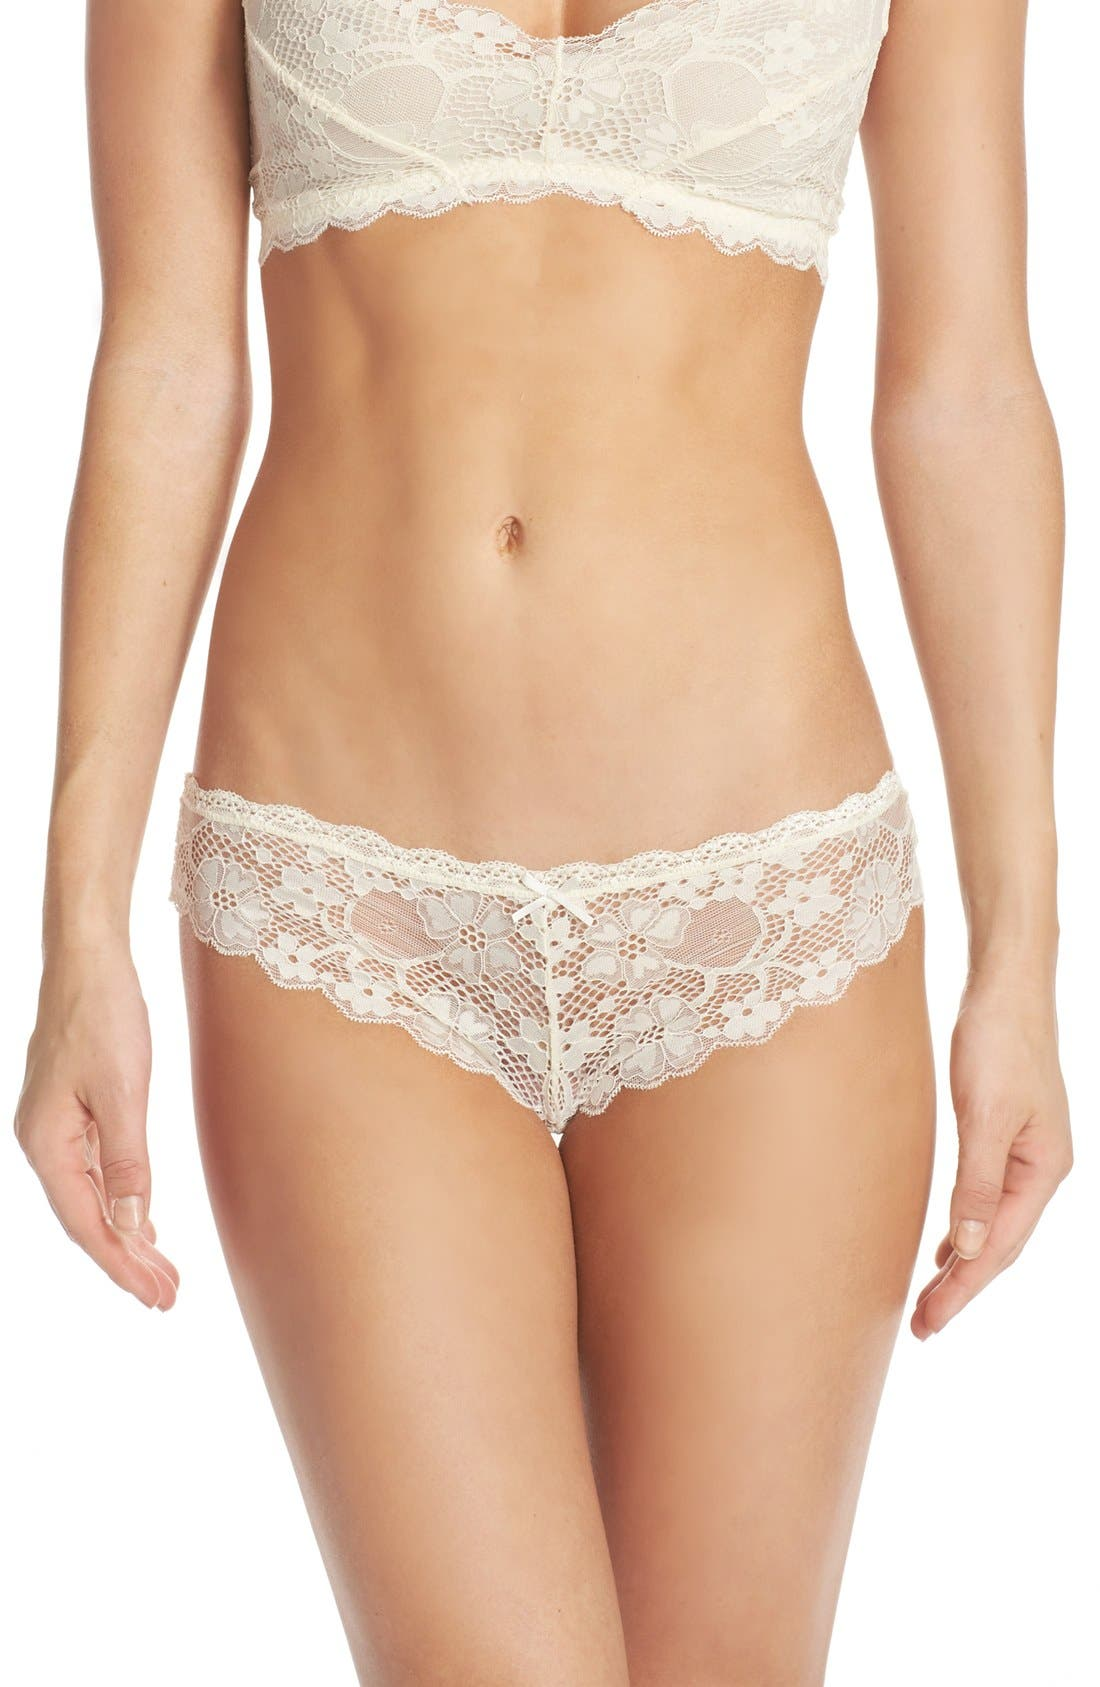 Honeydew Intimates Camellia Lace Thong (4 for $30)